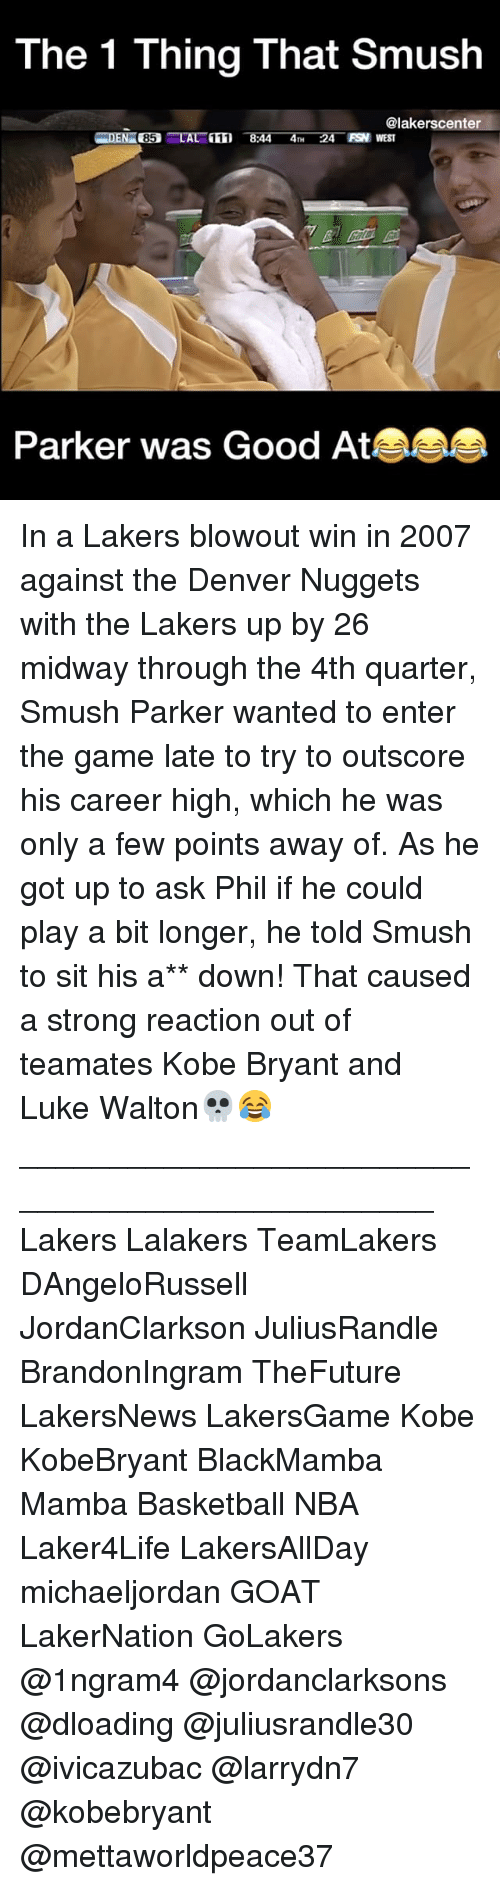 Basketball, Kobe Bryant, and Los Angeles Lakers: The 1 Thing That Smush  @lakerscenter  FSN WEST  85 LA  Parker was Good At In a Lakers blowout win in 2007 against the Denver Nuggets with the Lakers up by 26 midway through the 4th quarter, Smush Parker wanted to enter the game late to try to outscore his career high, which he was only a few points away of. As he got up to ask Phil if he could play a bit longer, he told Smush to sit his a** down! That caused a strong reaction out of teamates Kobe Bryant and Luke Walton💀😂 ________________________________________________ Lakers Lalakers TeamLakers DAngeloRussell JordanClarkson JuliusRandle BrandonIngram TheFuture LakersNews LakersGame Kobe KobeBryant BlackMamba Mamba Basketball NBA Laker4Life LakersAllDay michaeljordan GOAT LakerNation GoLakers @1ngram4 @jordanclarksons @dloading @juliusrandle30 @ivicazubac @larrydn7 @kobebryant @mettaworldpeace37